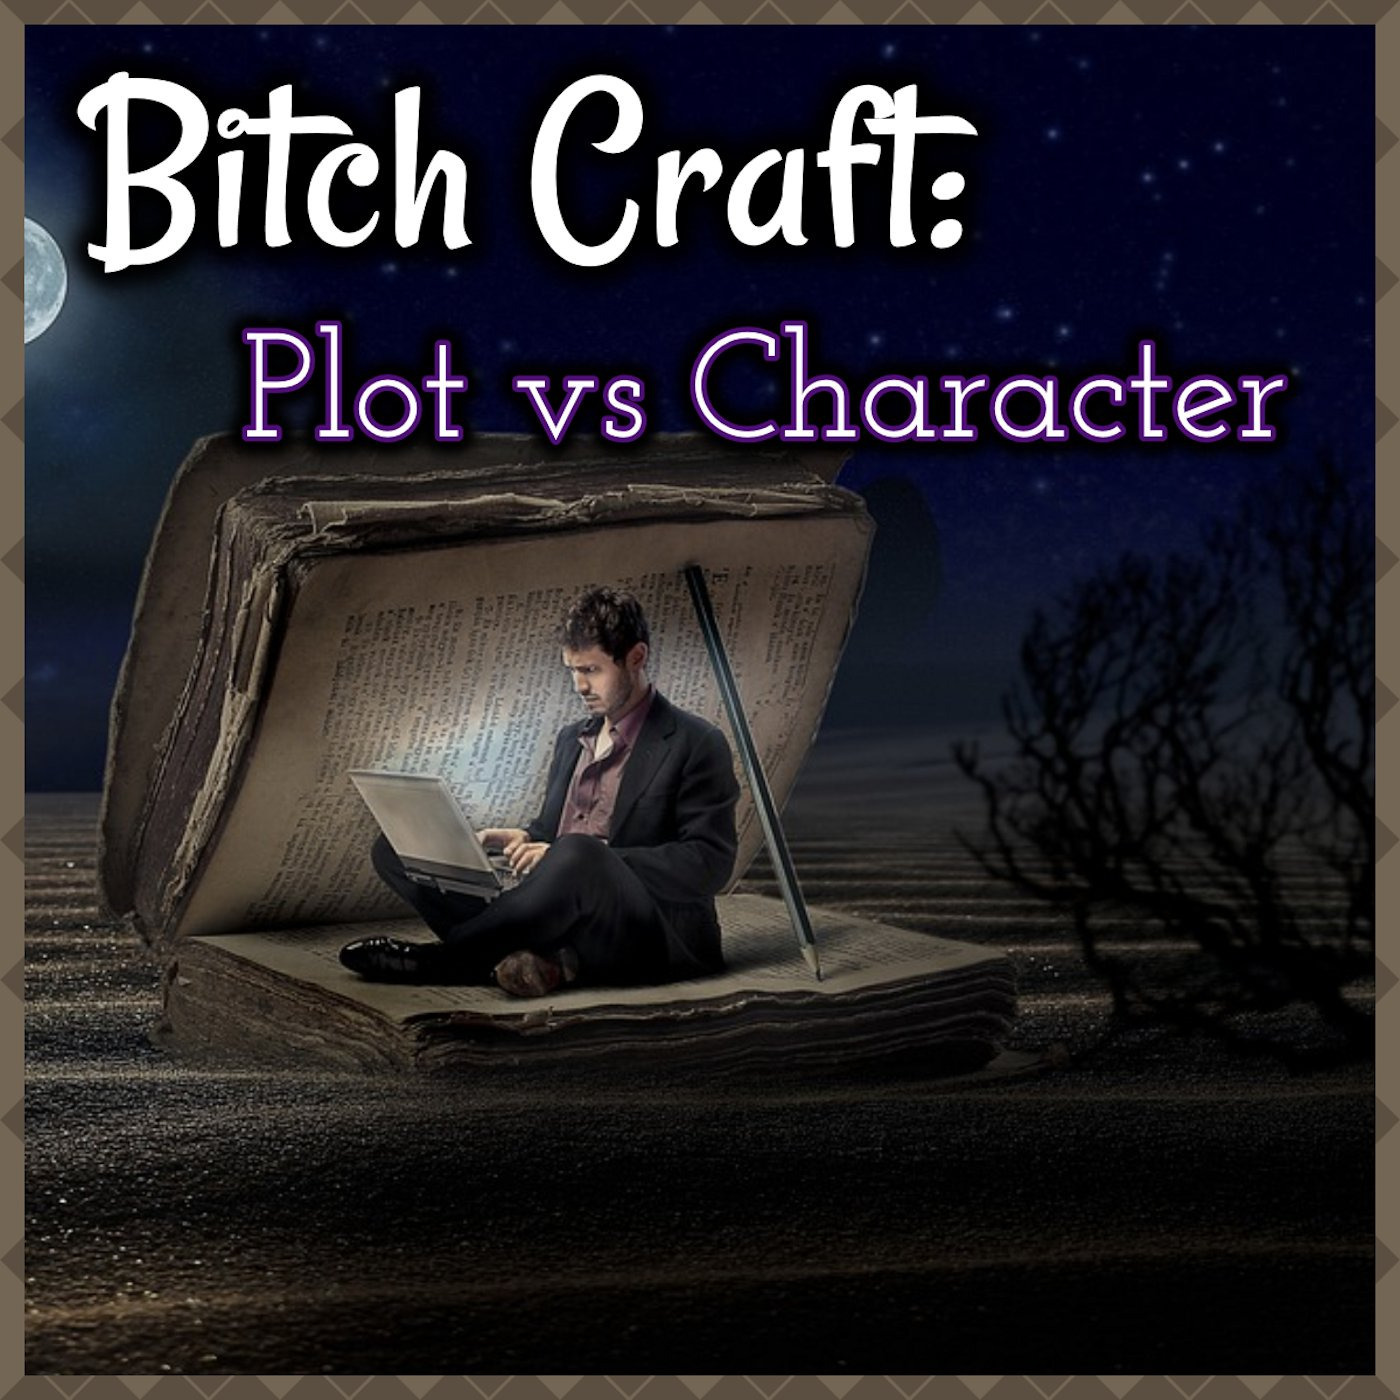 Bitch Craft: Plot vs Character